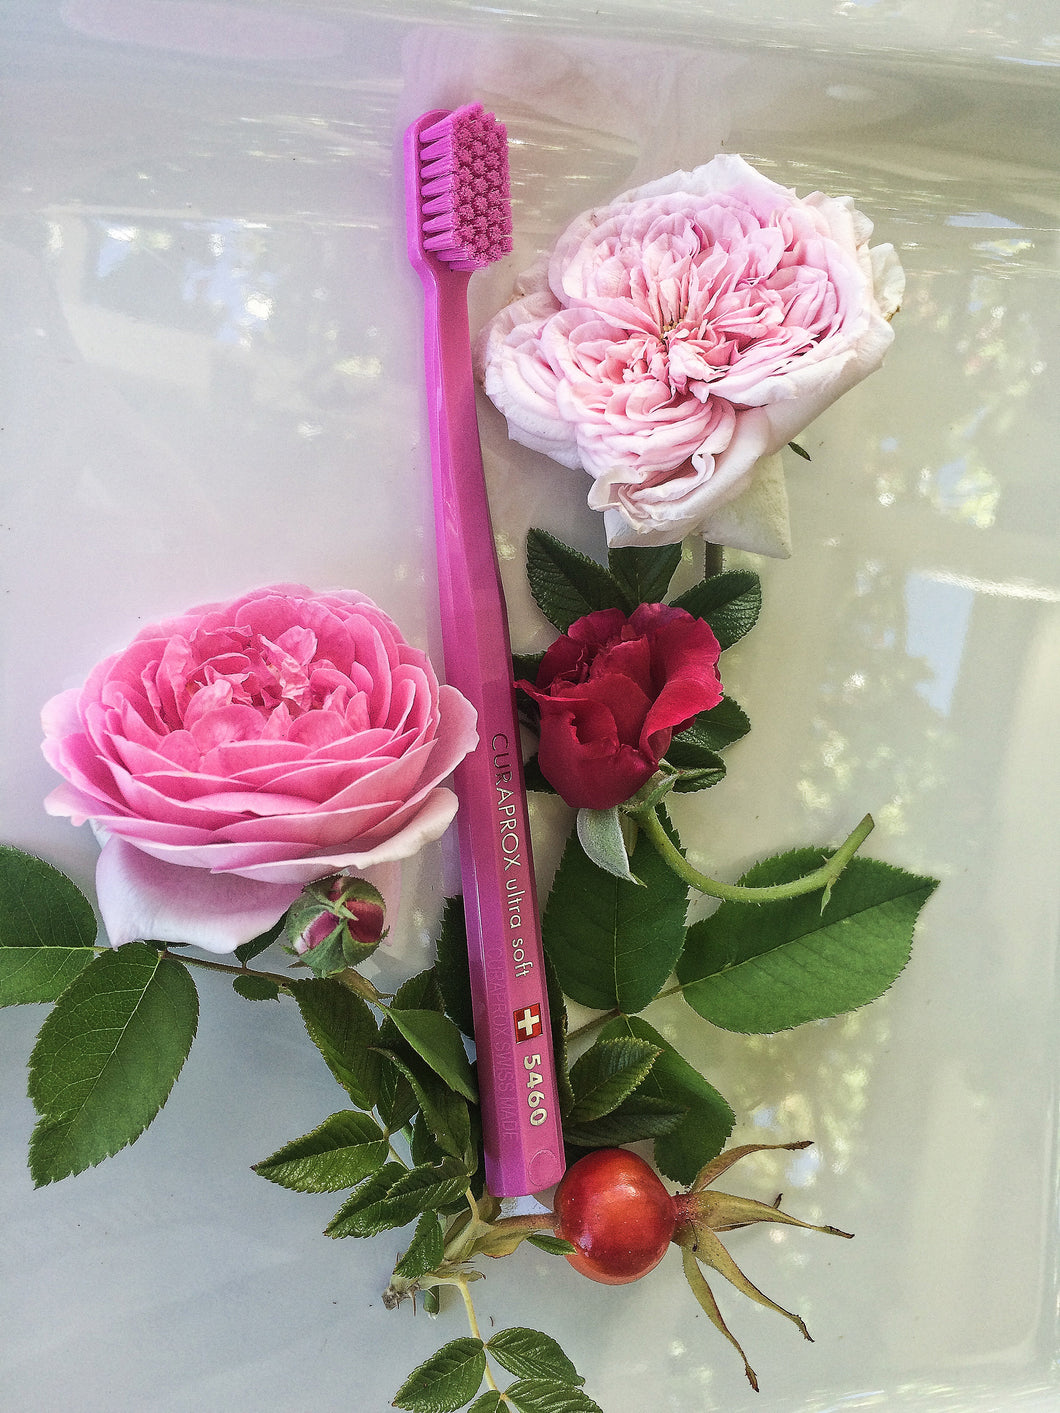 Curaprox 5460 Toothbrush Beautiful Rose Pink